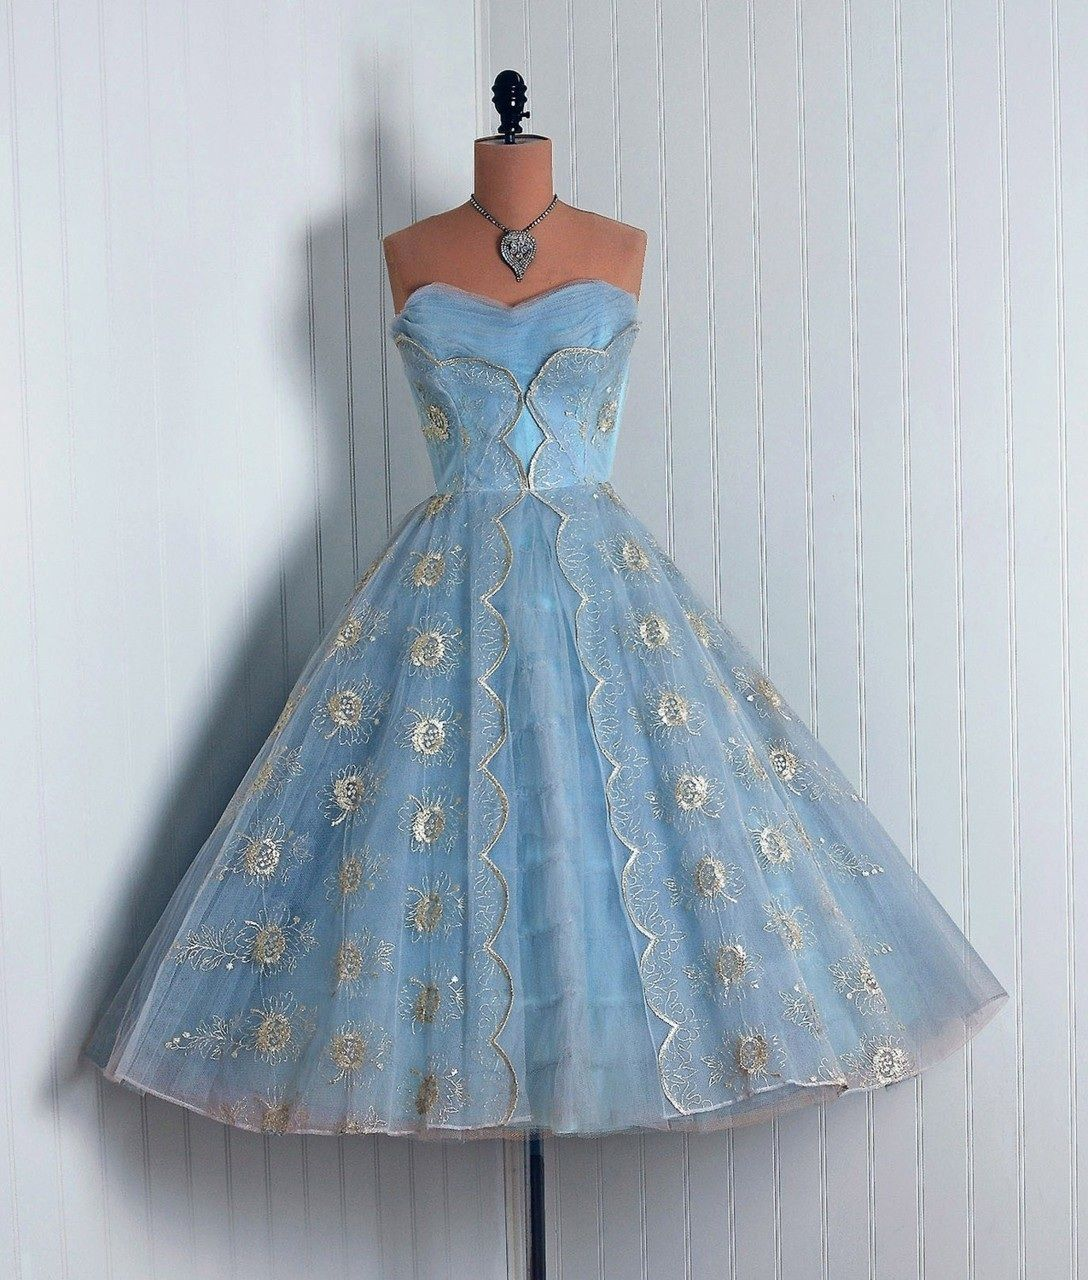 Prom dress s vintage vault pinterest s and prom